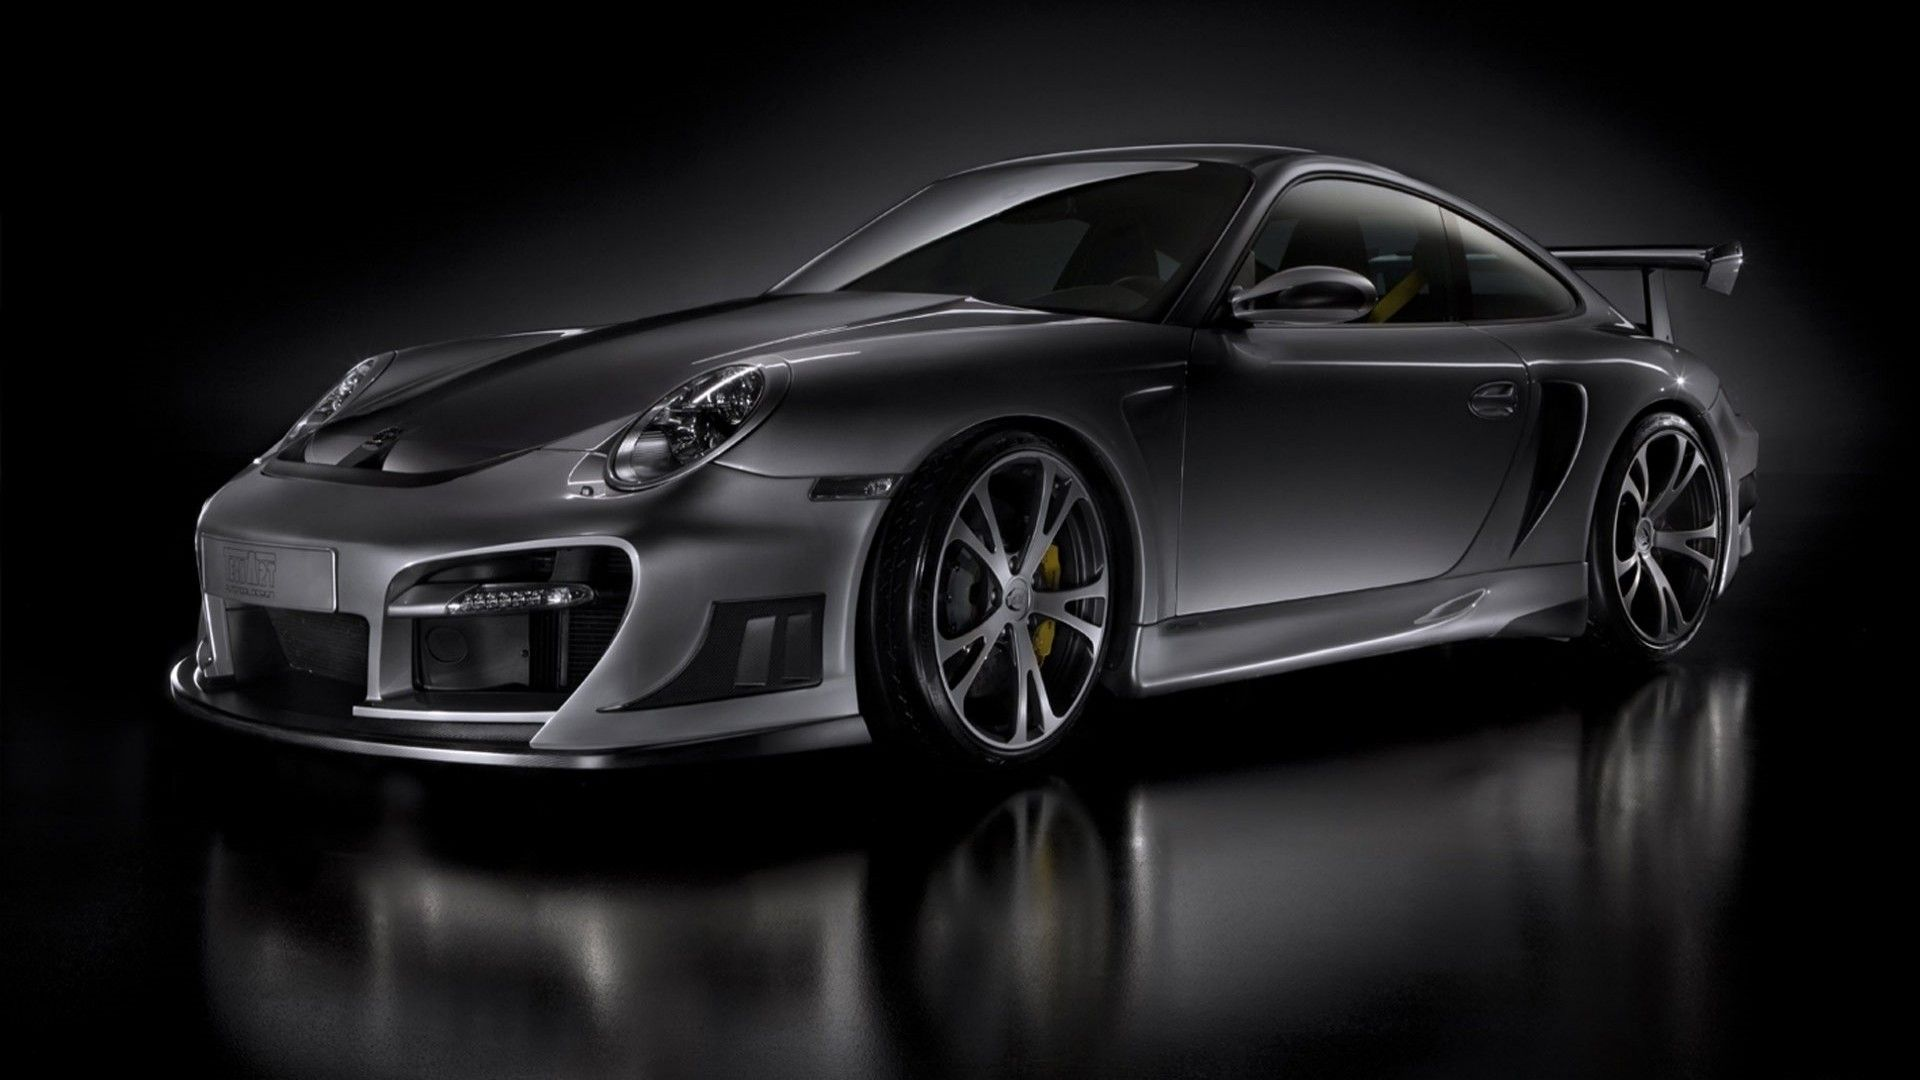 Porsche Hd Wallpapers 1080p: 20+ HD Car Wallpapers 1080p